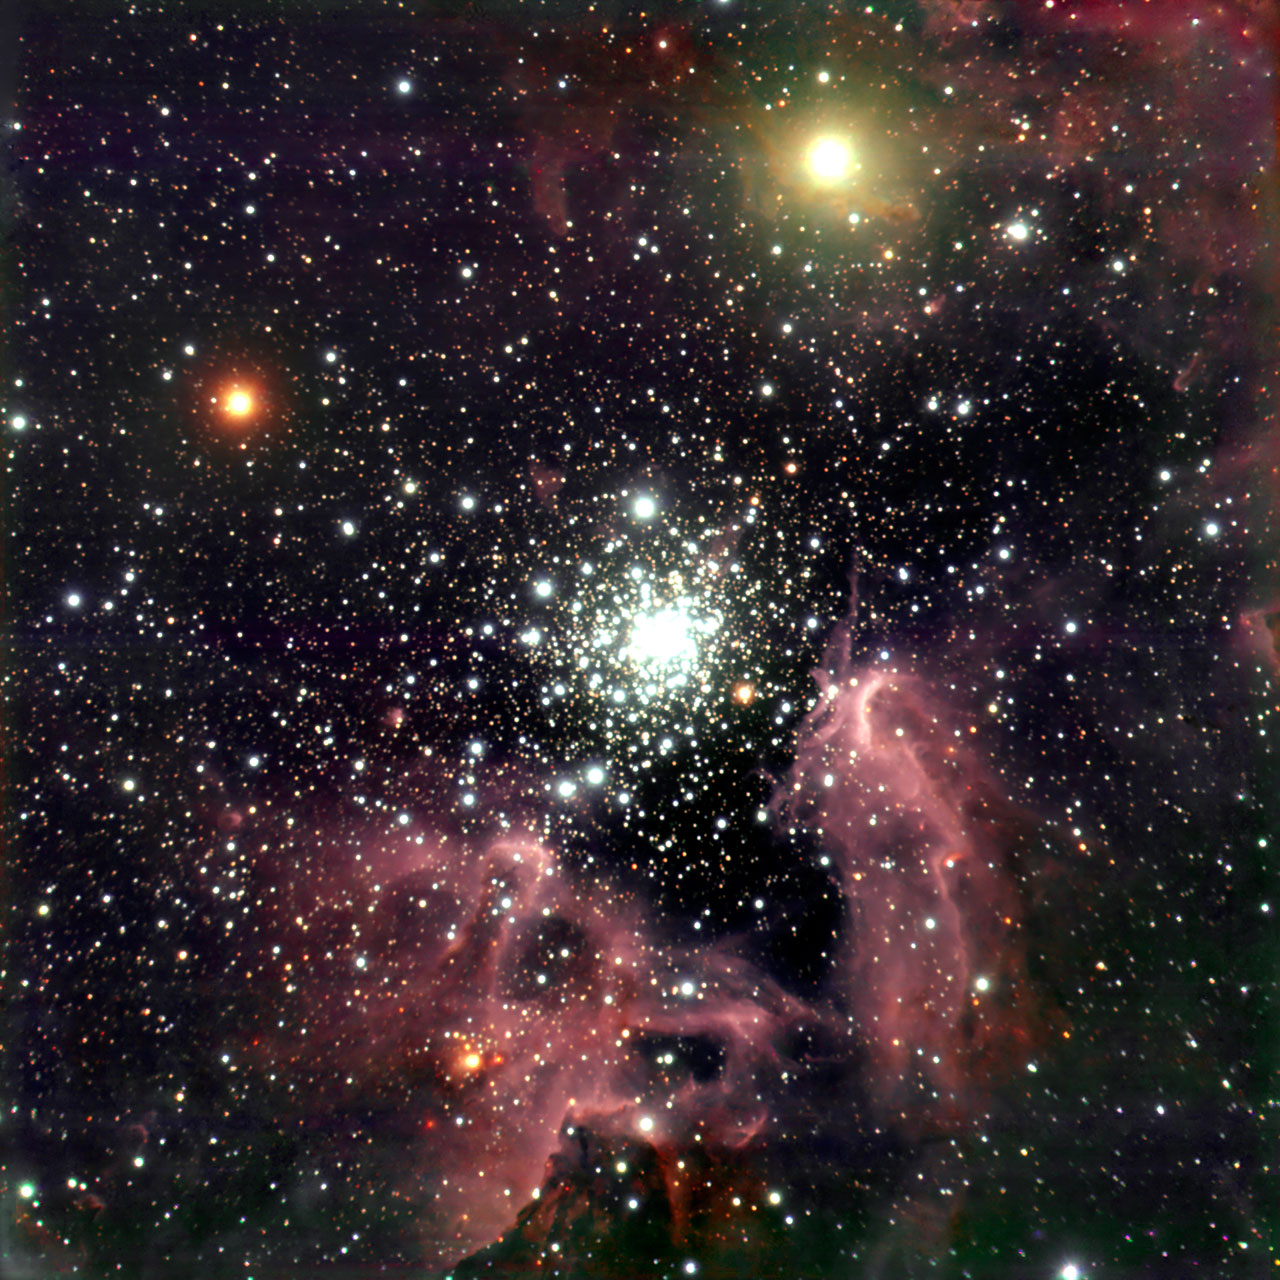 The Cross Hd Wallpaper The Galactic Starburst Region Ngc 3603 Eso